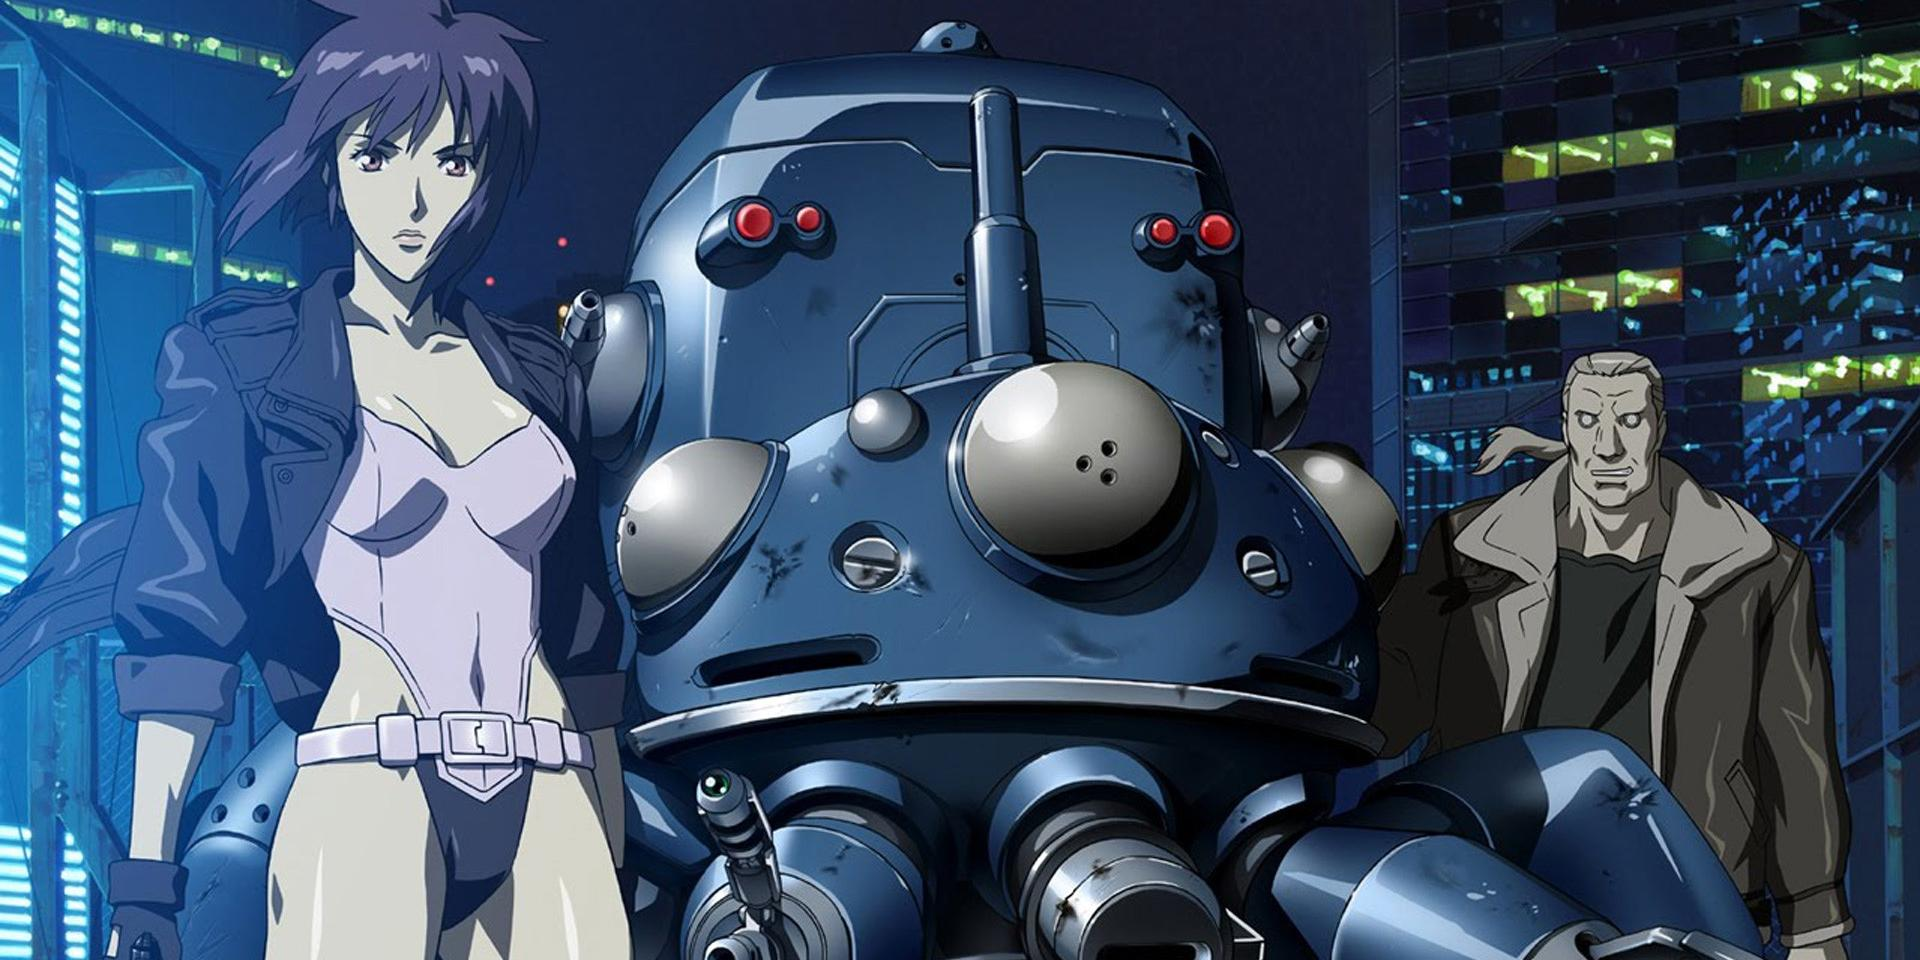 Xem phim Ghost in the Shell: Stand Alone Complex - Solid State Society - Koukaku Kidoutai Stand Alone Complex - Solid State Society | Koukaku Kidoutai Stand Alone Complex: Solid State Society | GitS SAC SSS | GitS: SAC 3 | gits sac3 | gitssac3 | sac3, sss, Ghost in the Shell S.A.C. Solid State Society Vietsub